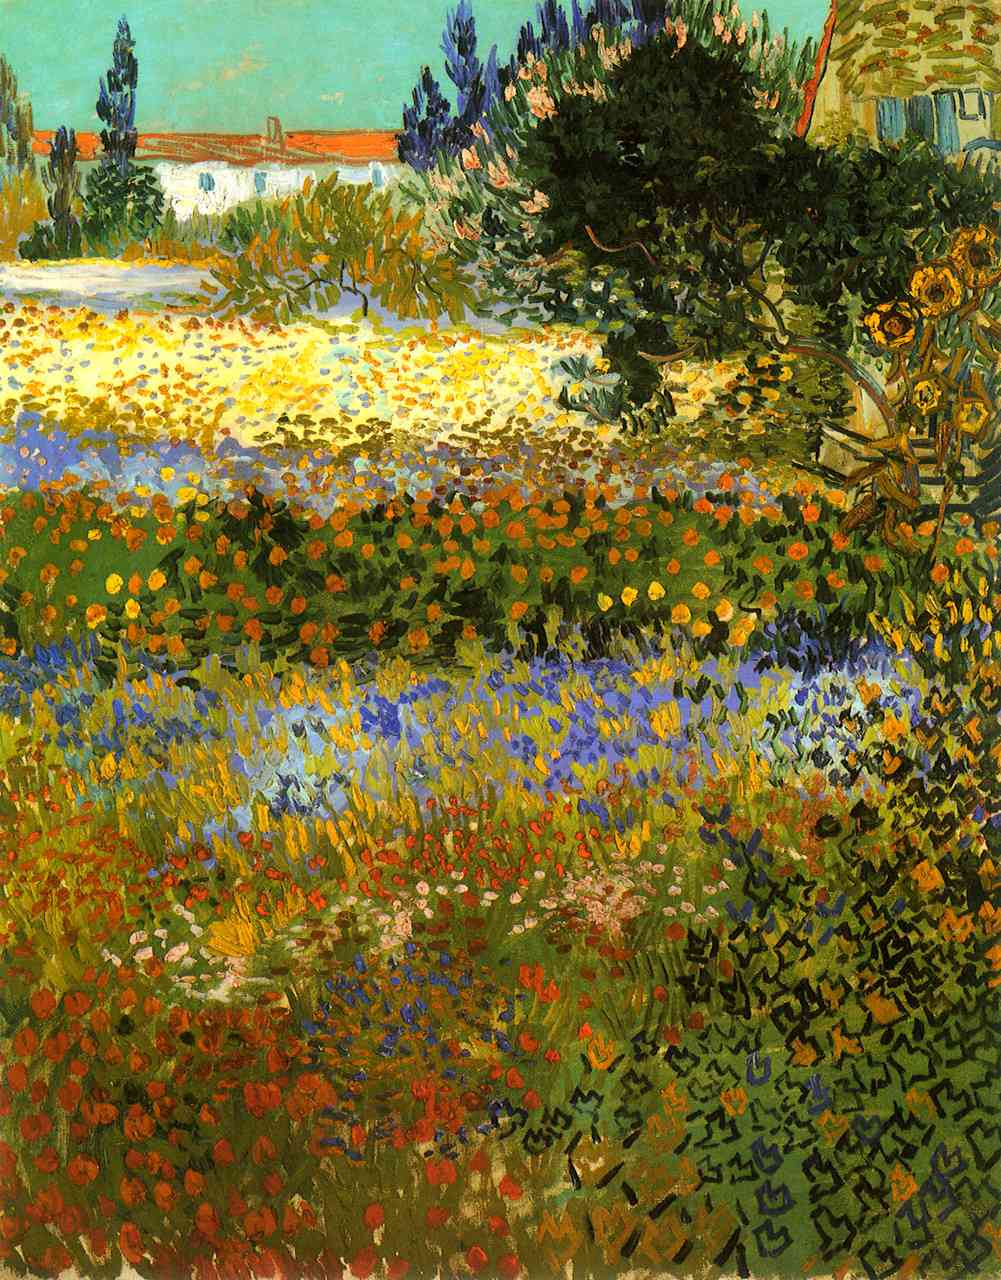 Check out the colours in 'Flowering Garden', 1888 by Vincent van Gogh http://t.co/8tgsYOocLl